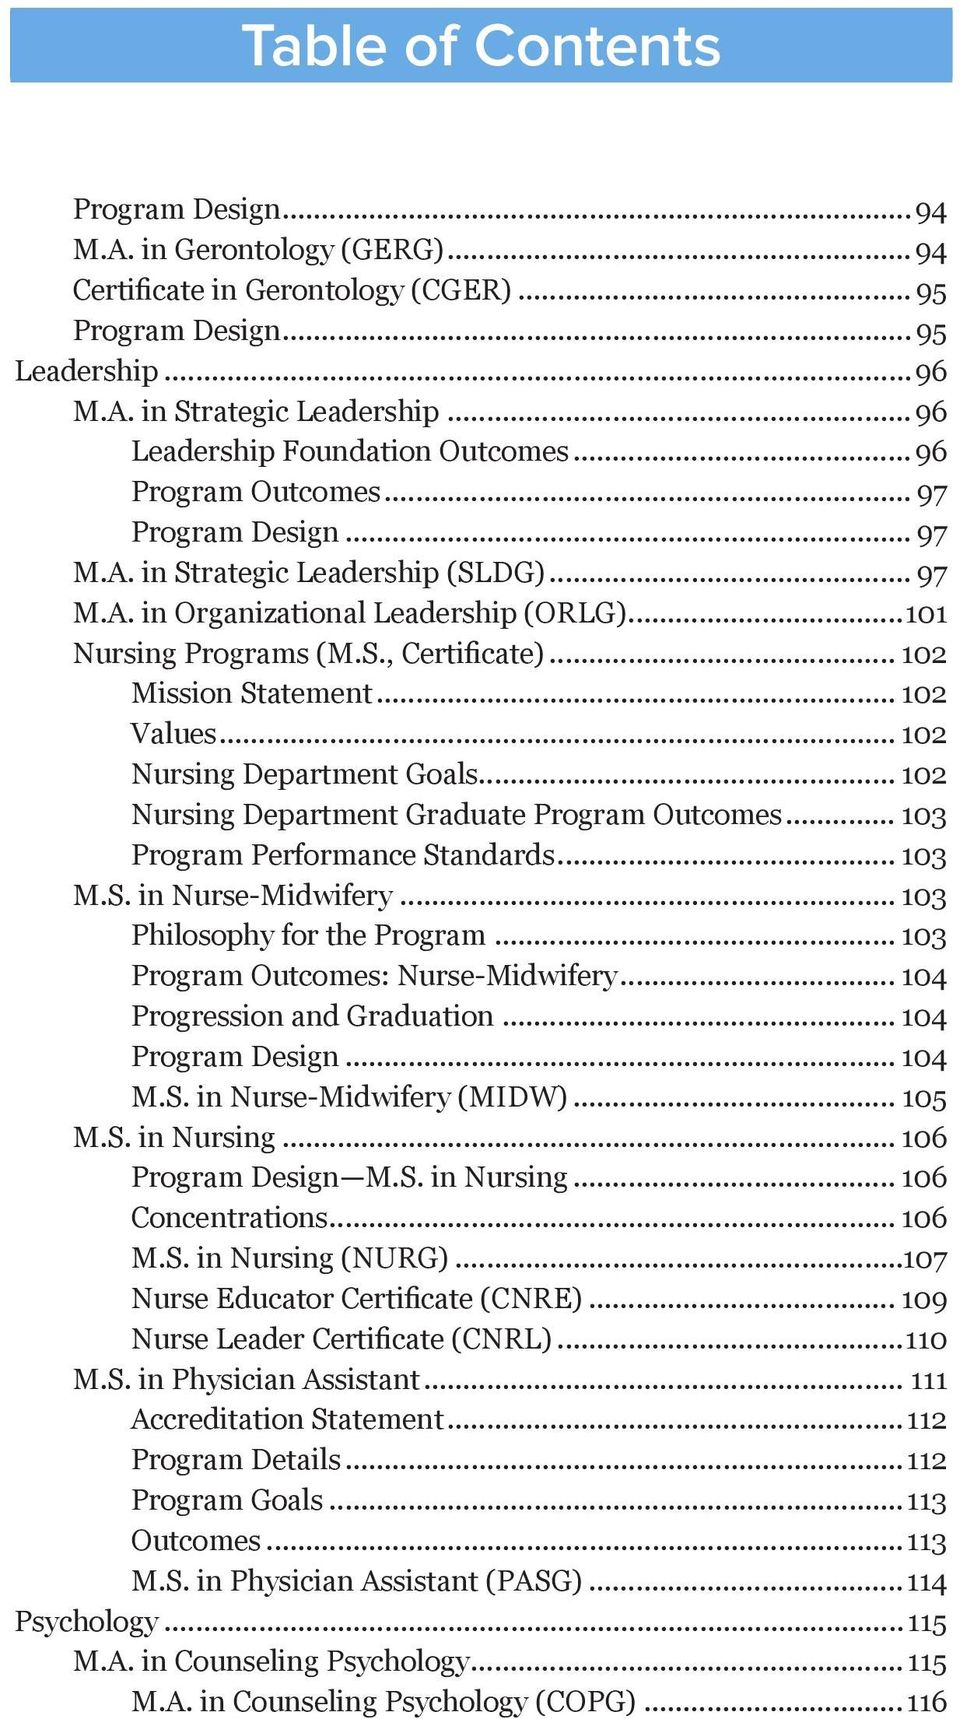 .. 102 Mission Statement... 102 Values... 102 Nursing Department Goals... 102 Nursing Department Graduate Program Outcomes... 103 Program Performance Standards... 103 M.S. in Nurse-Midwifery.